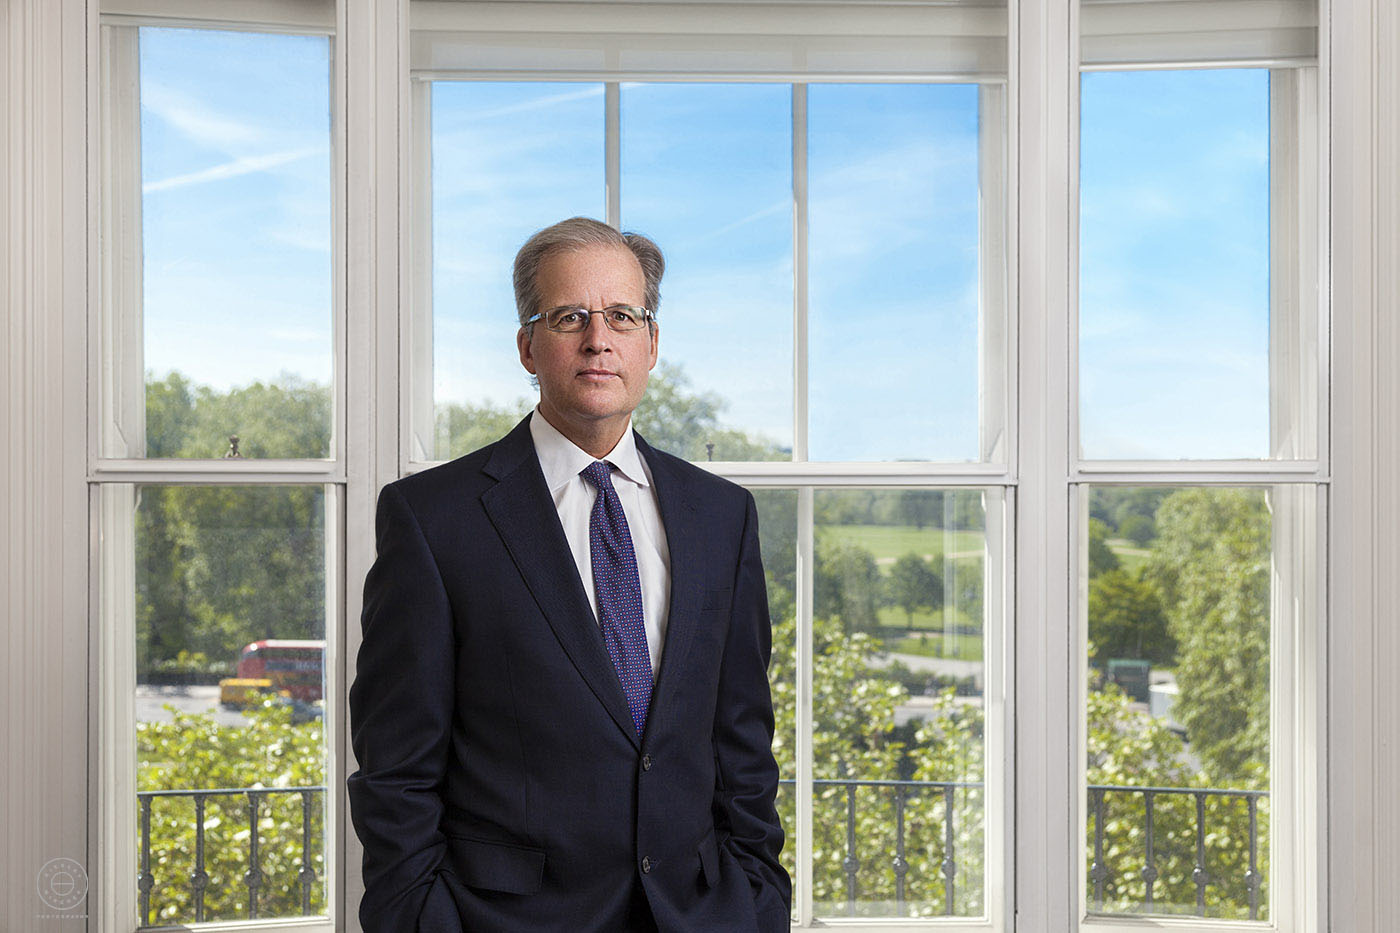 Corporate portrait by the wnidow with view of Hyde Park London